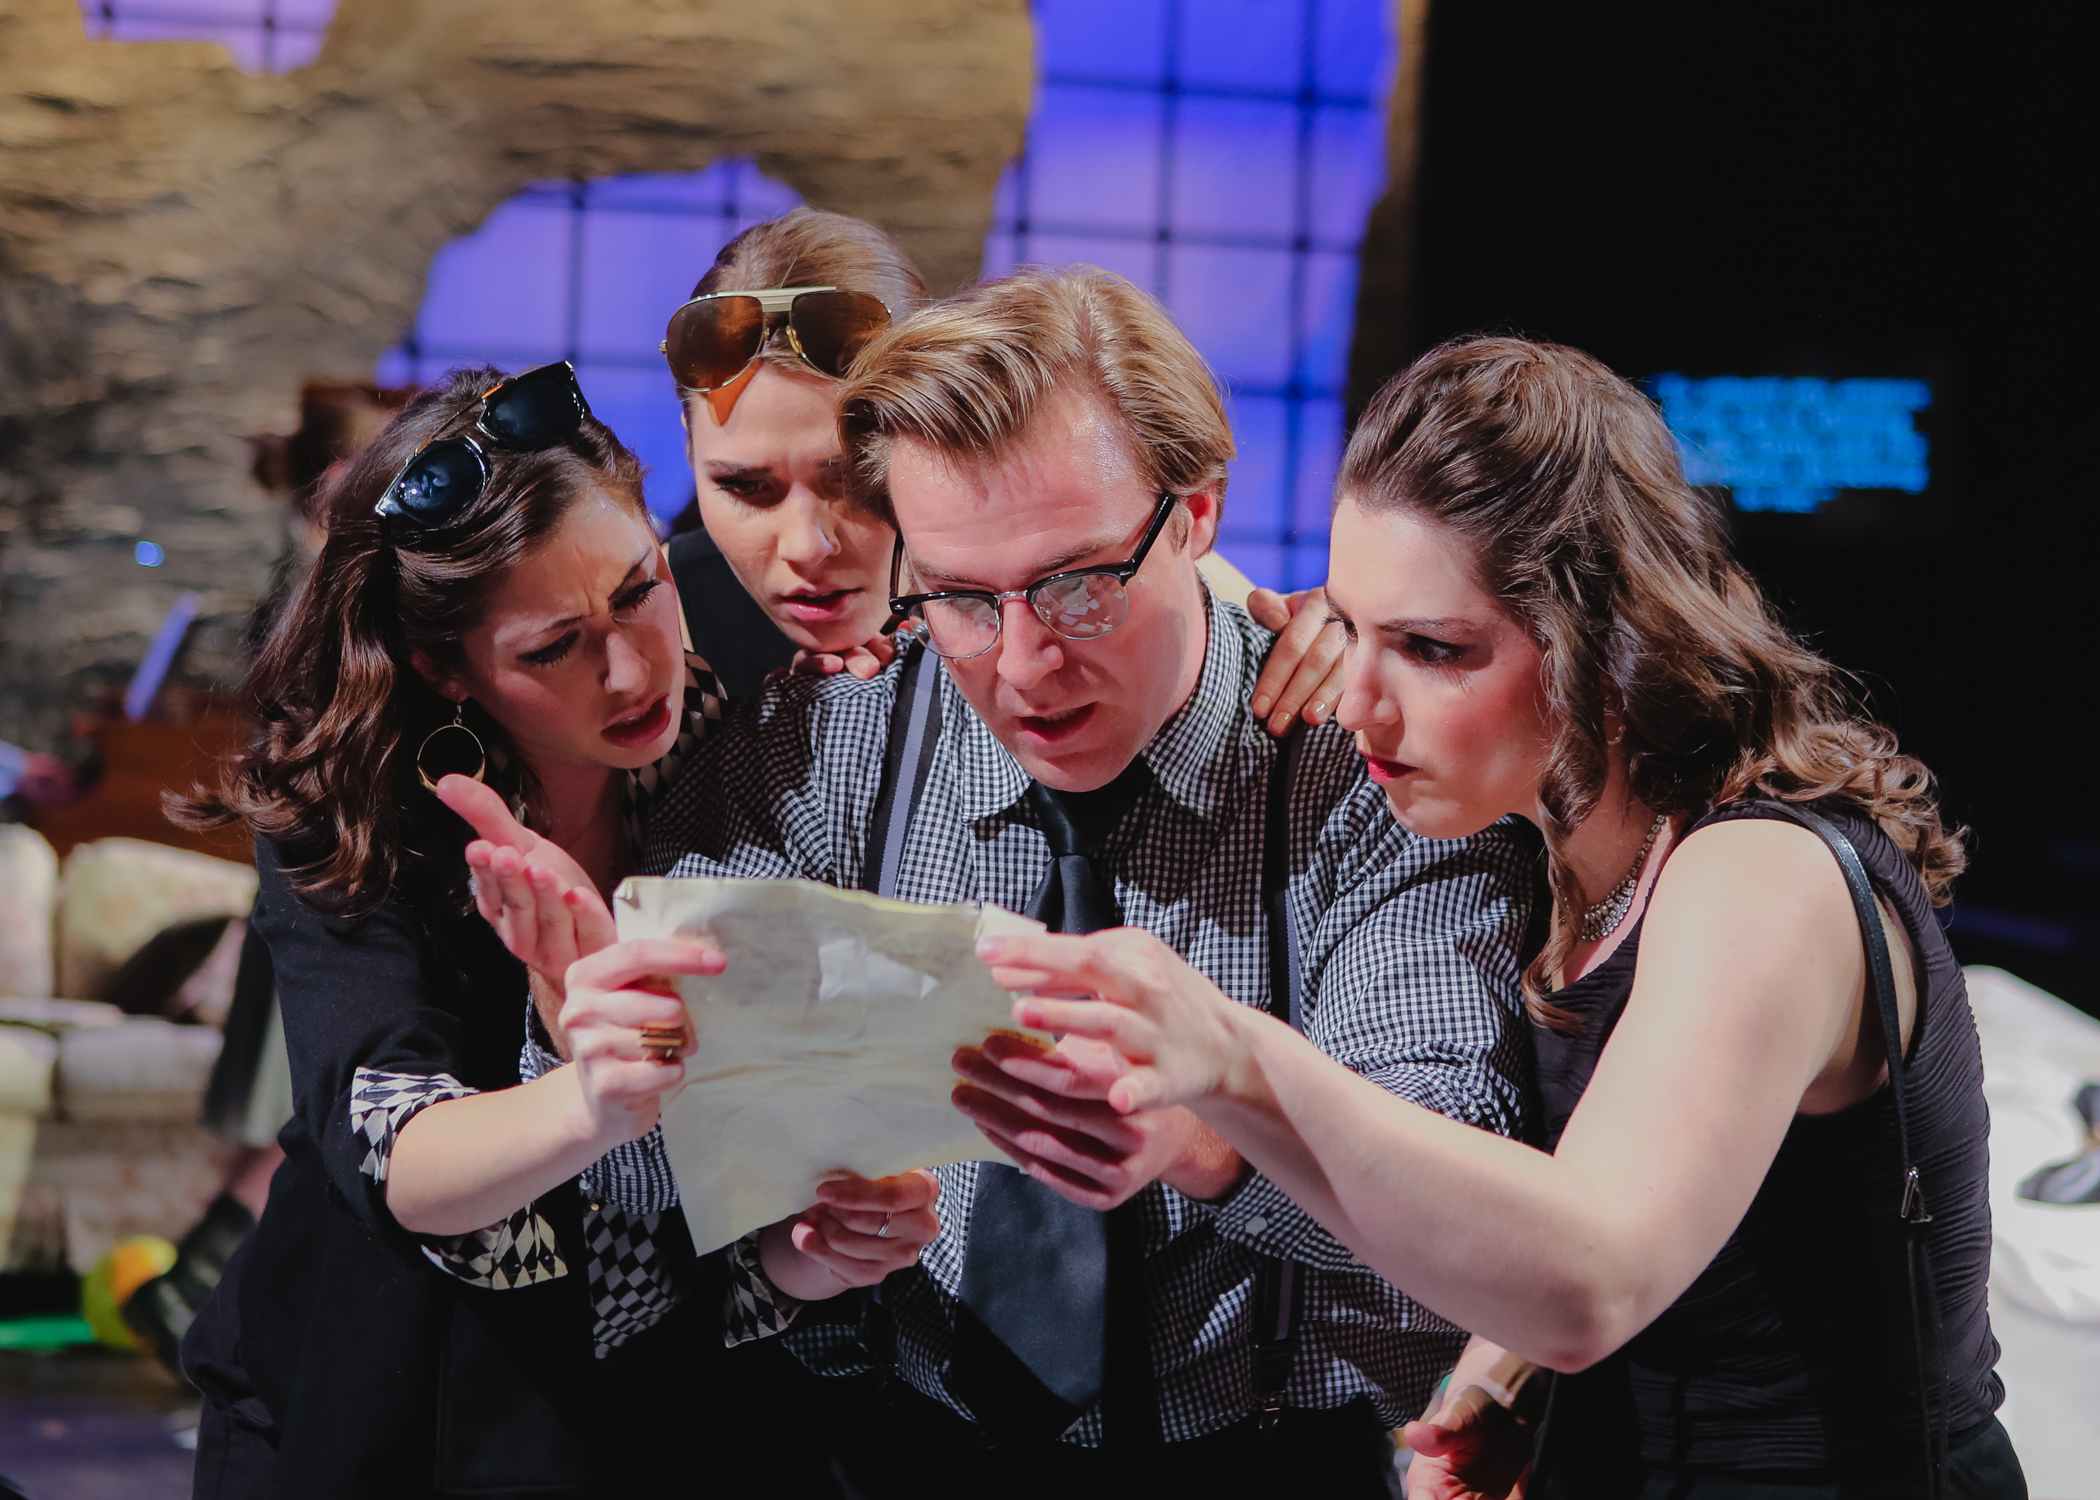 (From Left to Right): Tascha Anderson, Emma Sorenson, Dustin Damonte, and Bethany Worrell in a scene from  Four Sisters  (Photo Credit: Dan Busler).